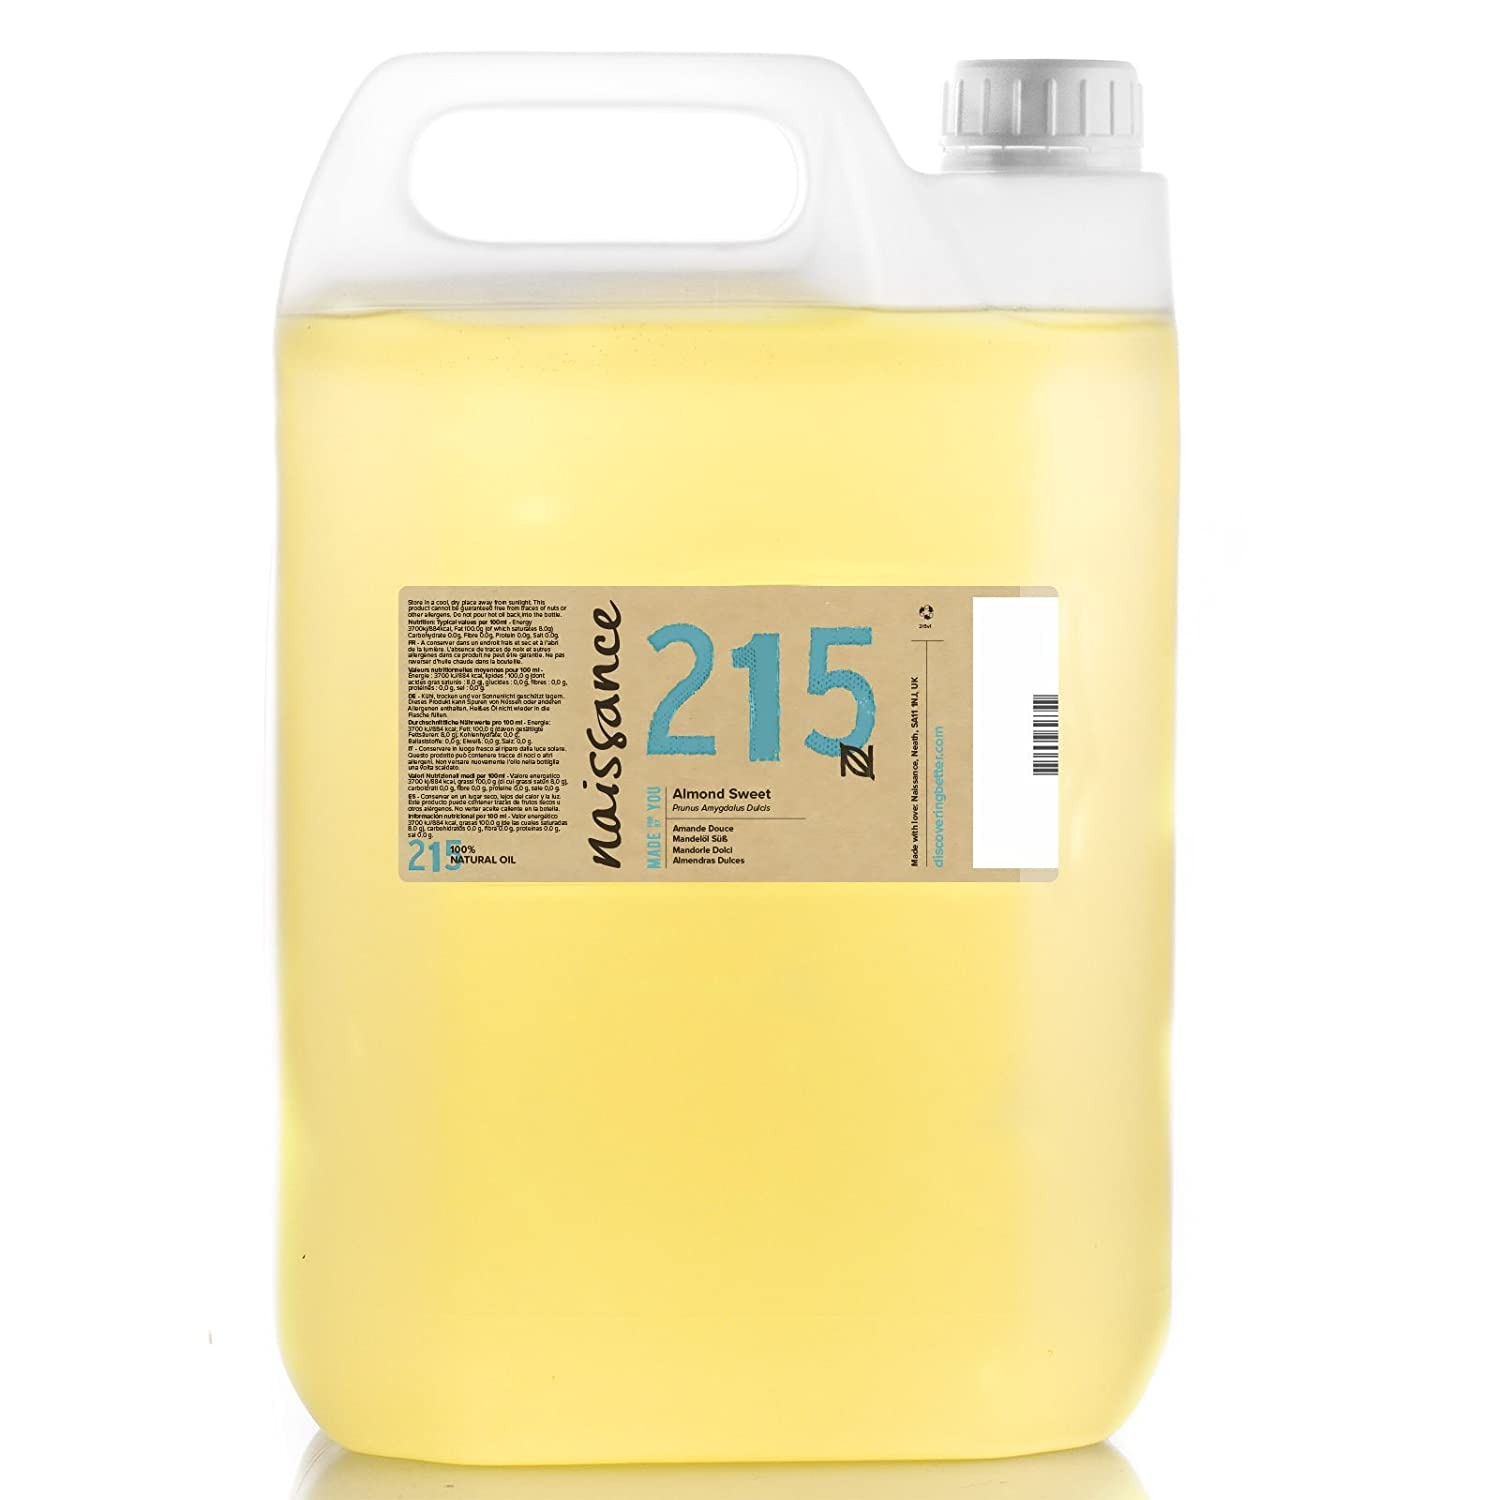 Naissance Sweet Almond Oil (no. 215) 5 Litre - Pure, Natural, Cruelty Free, Vegan, No GMO